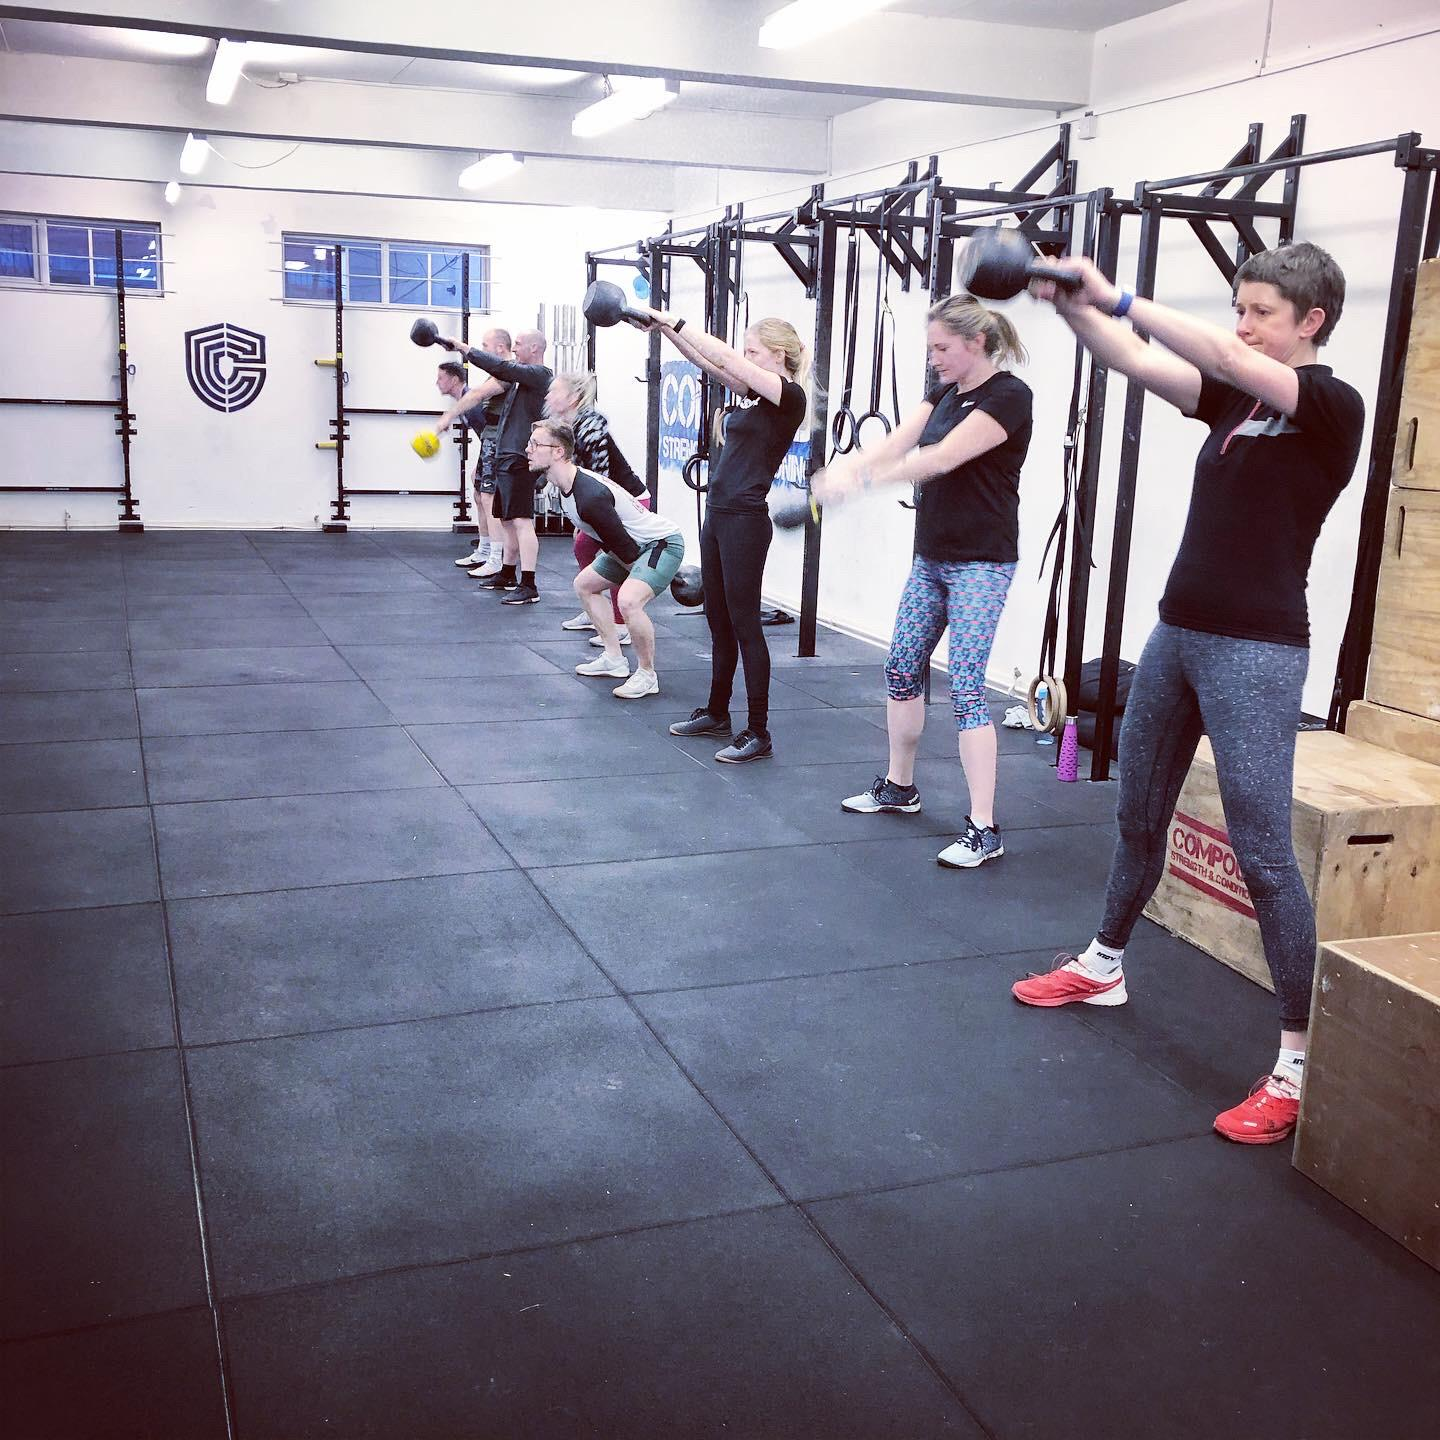 People training with kettlebells in gym